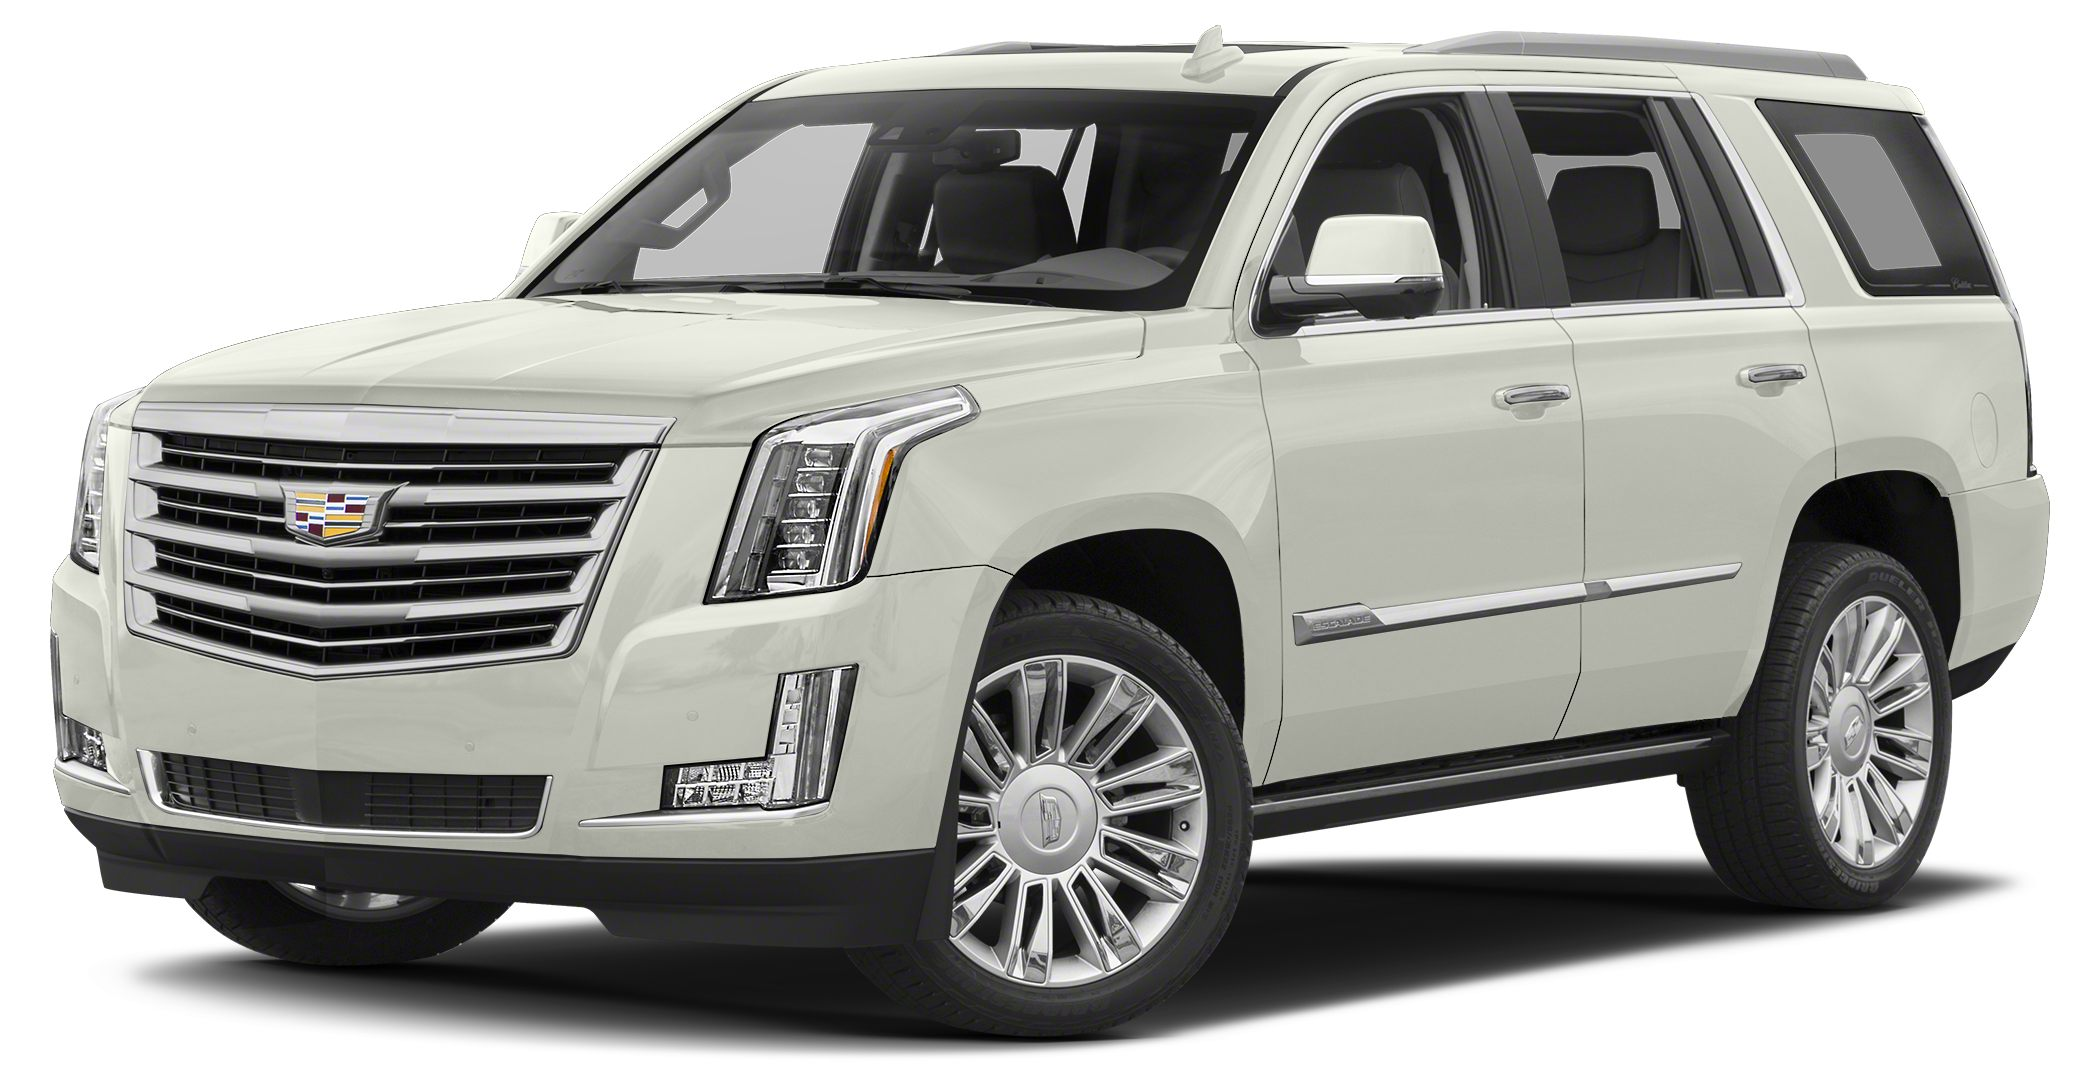 2016 Cadillac Escalade Platinum The well-recognized Escalade has been among the Kings of the SUV f